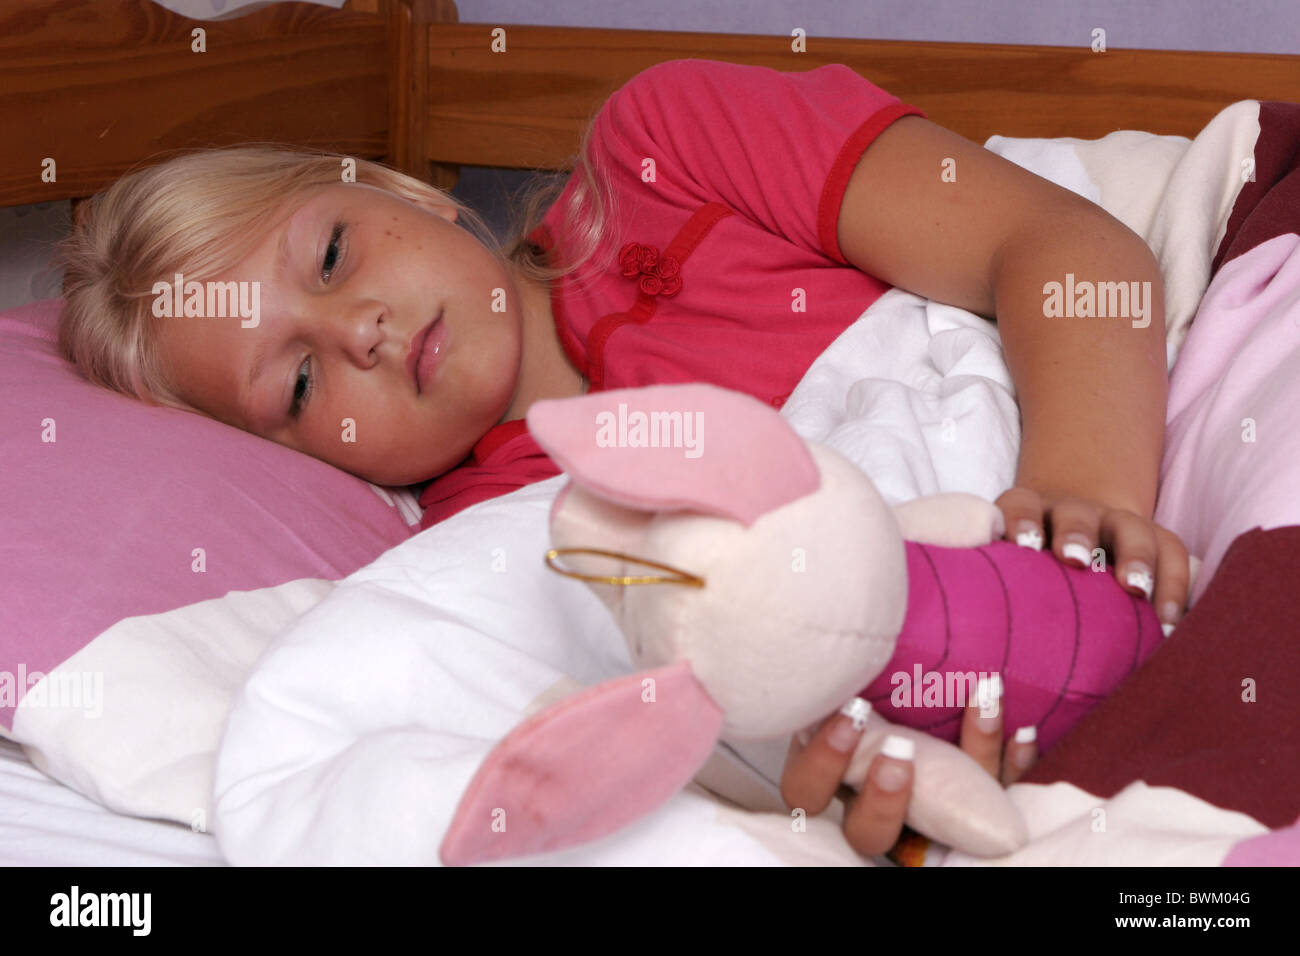 Sick child in bed with cuddle - Stock Image